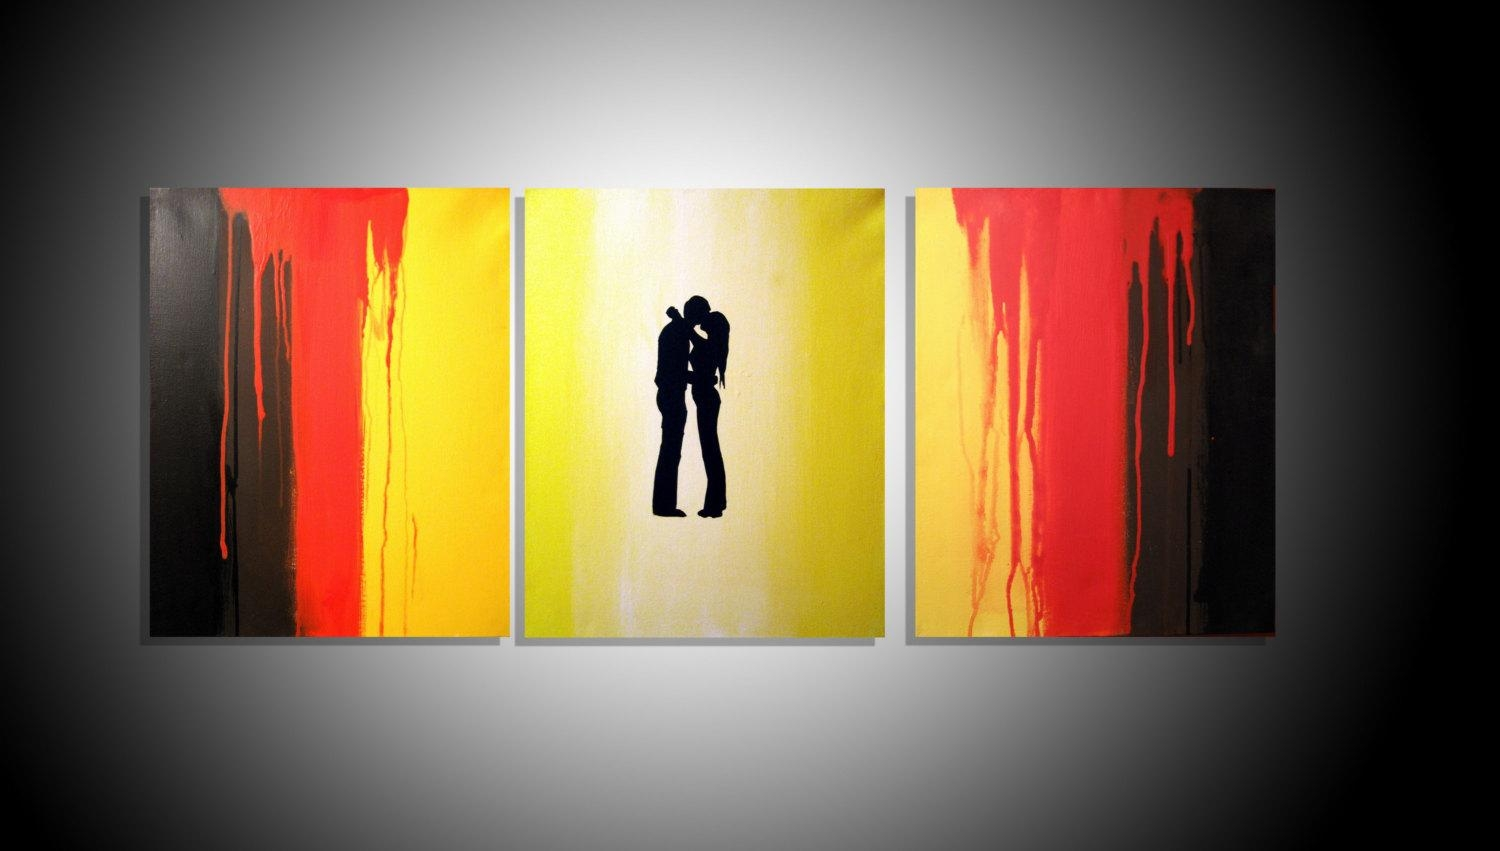 Large Wall Romantic Romance Art Triptych 3 Panel Wall Art Regarding Large Triptych Wall Art (View 16 of 20)